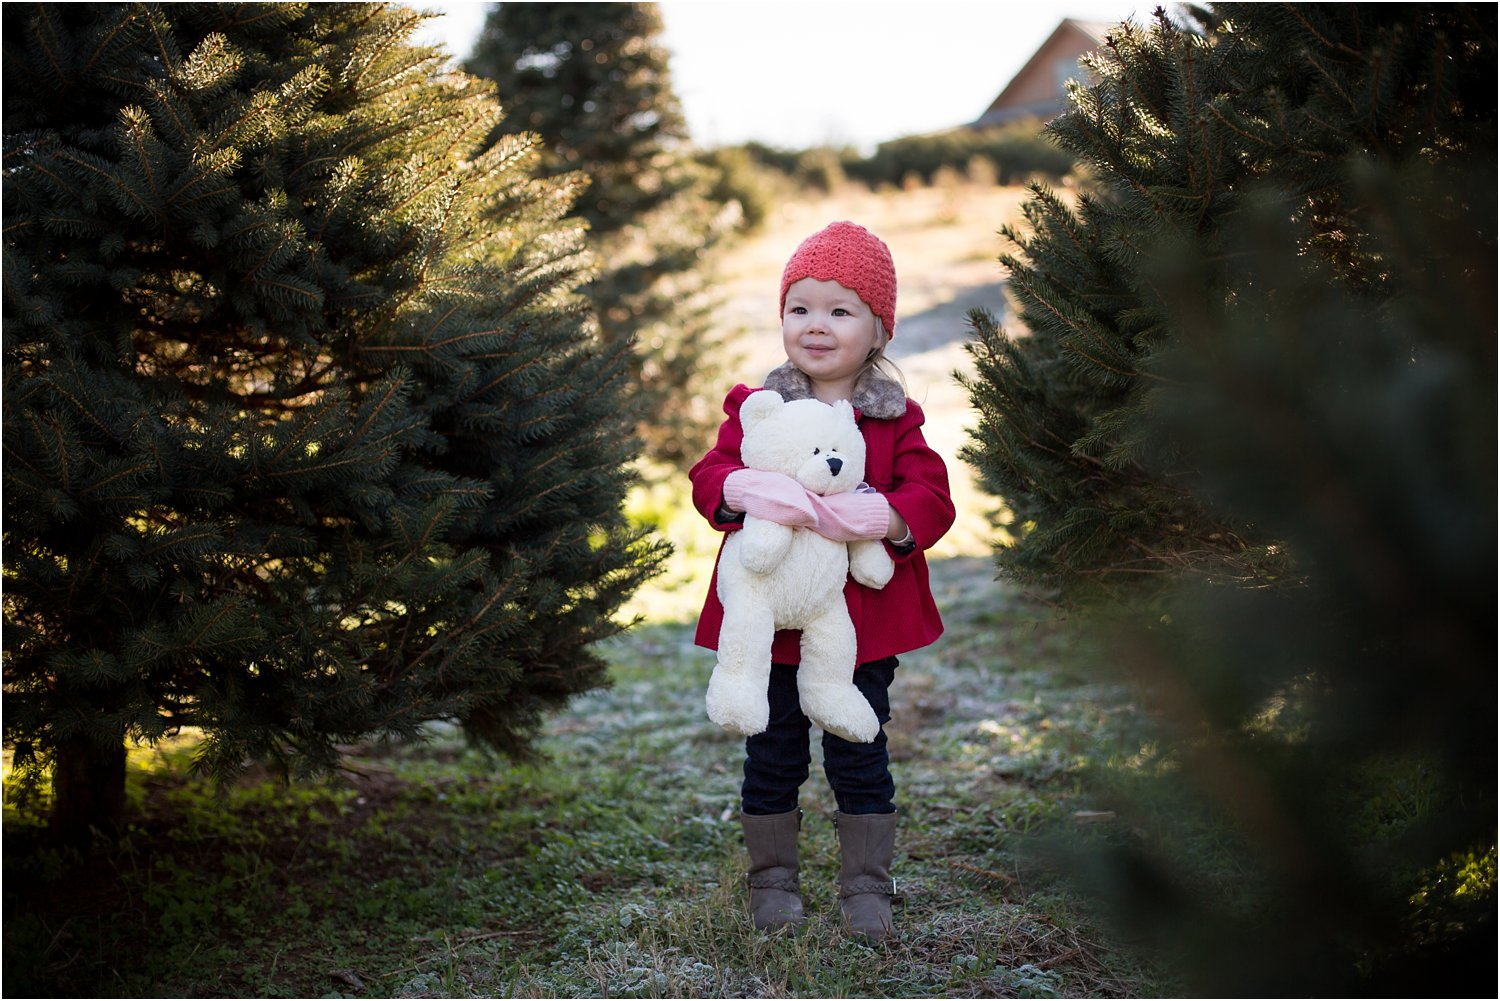 Moose_Apple_Chrismas_Tree_Farm_Family_Portraits_0002.jpg